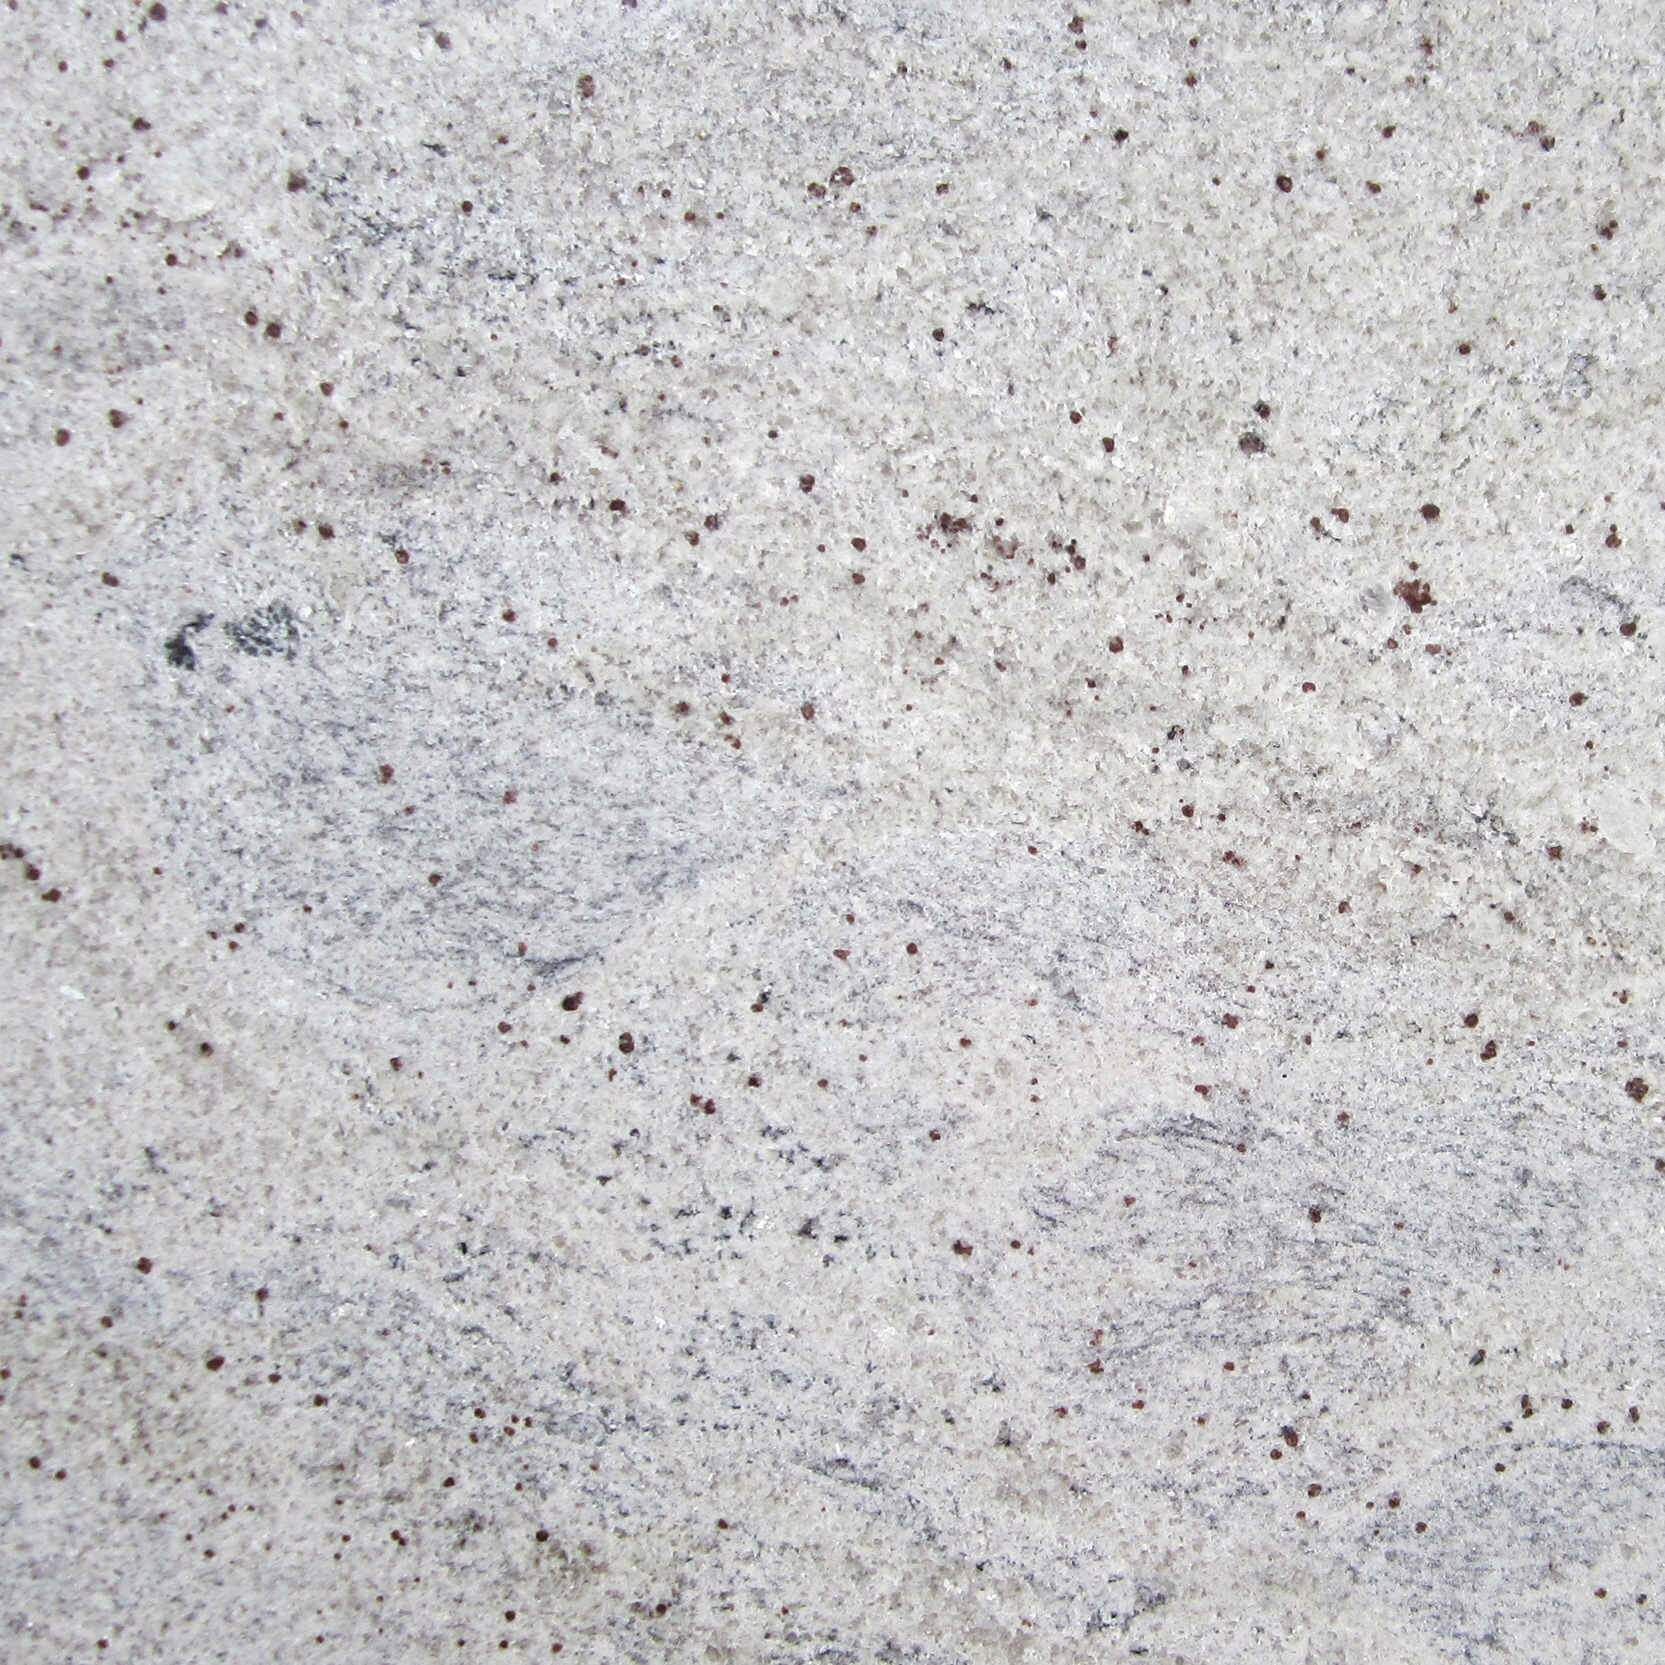 Kashmir White | 9 Granites That Just Might Make You Stop Hating on Granite | Interiors for Families | Blog of Kelly Rogers Interiors